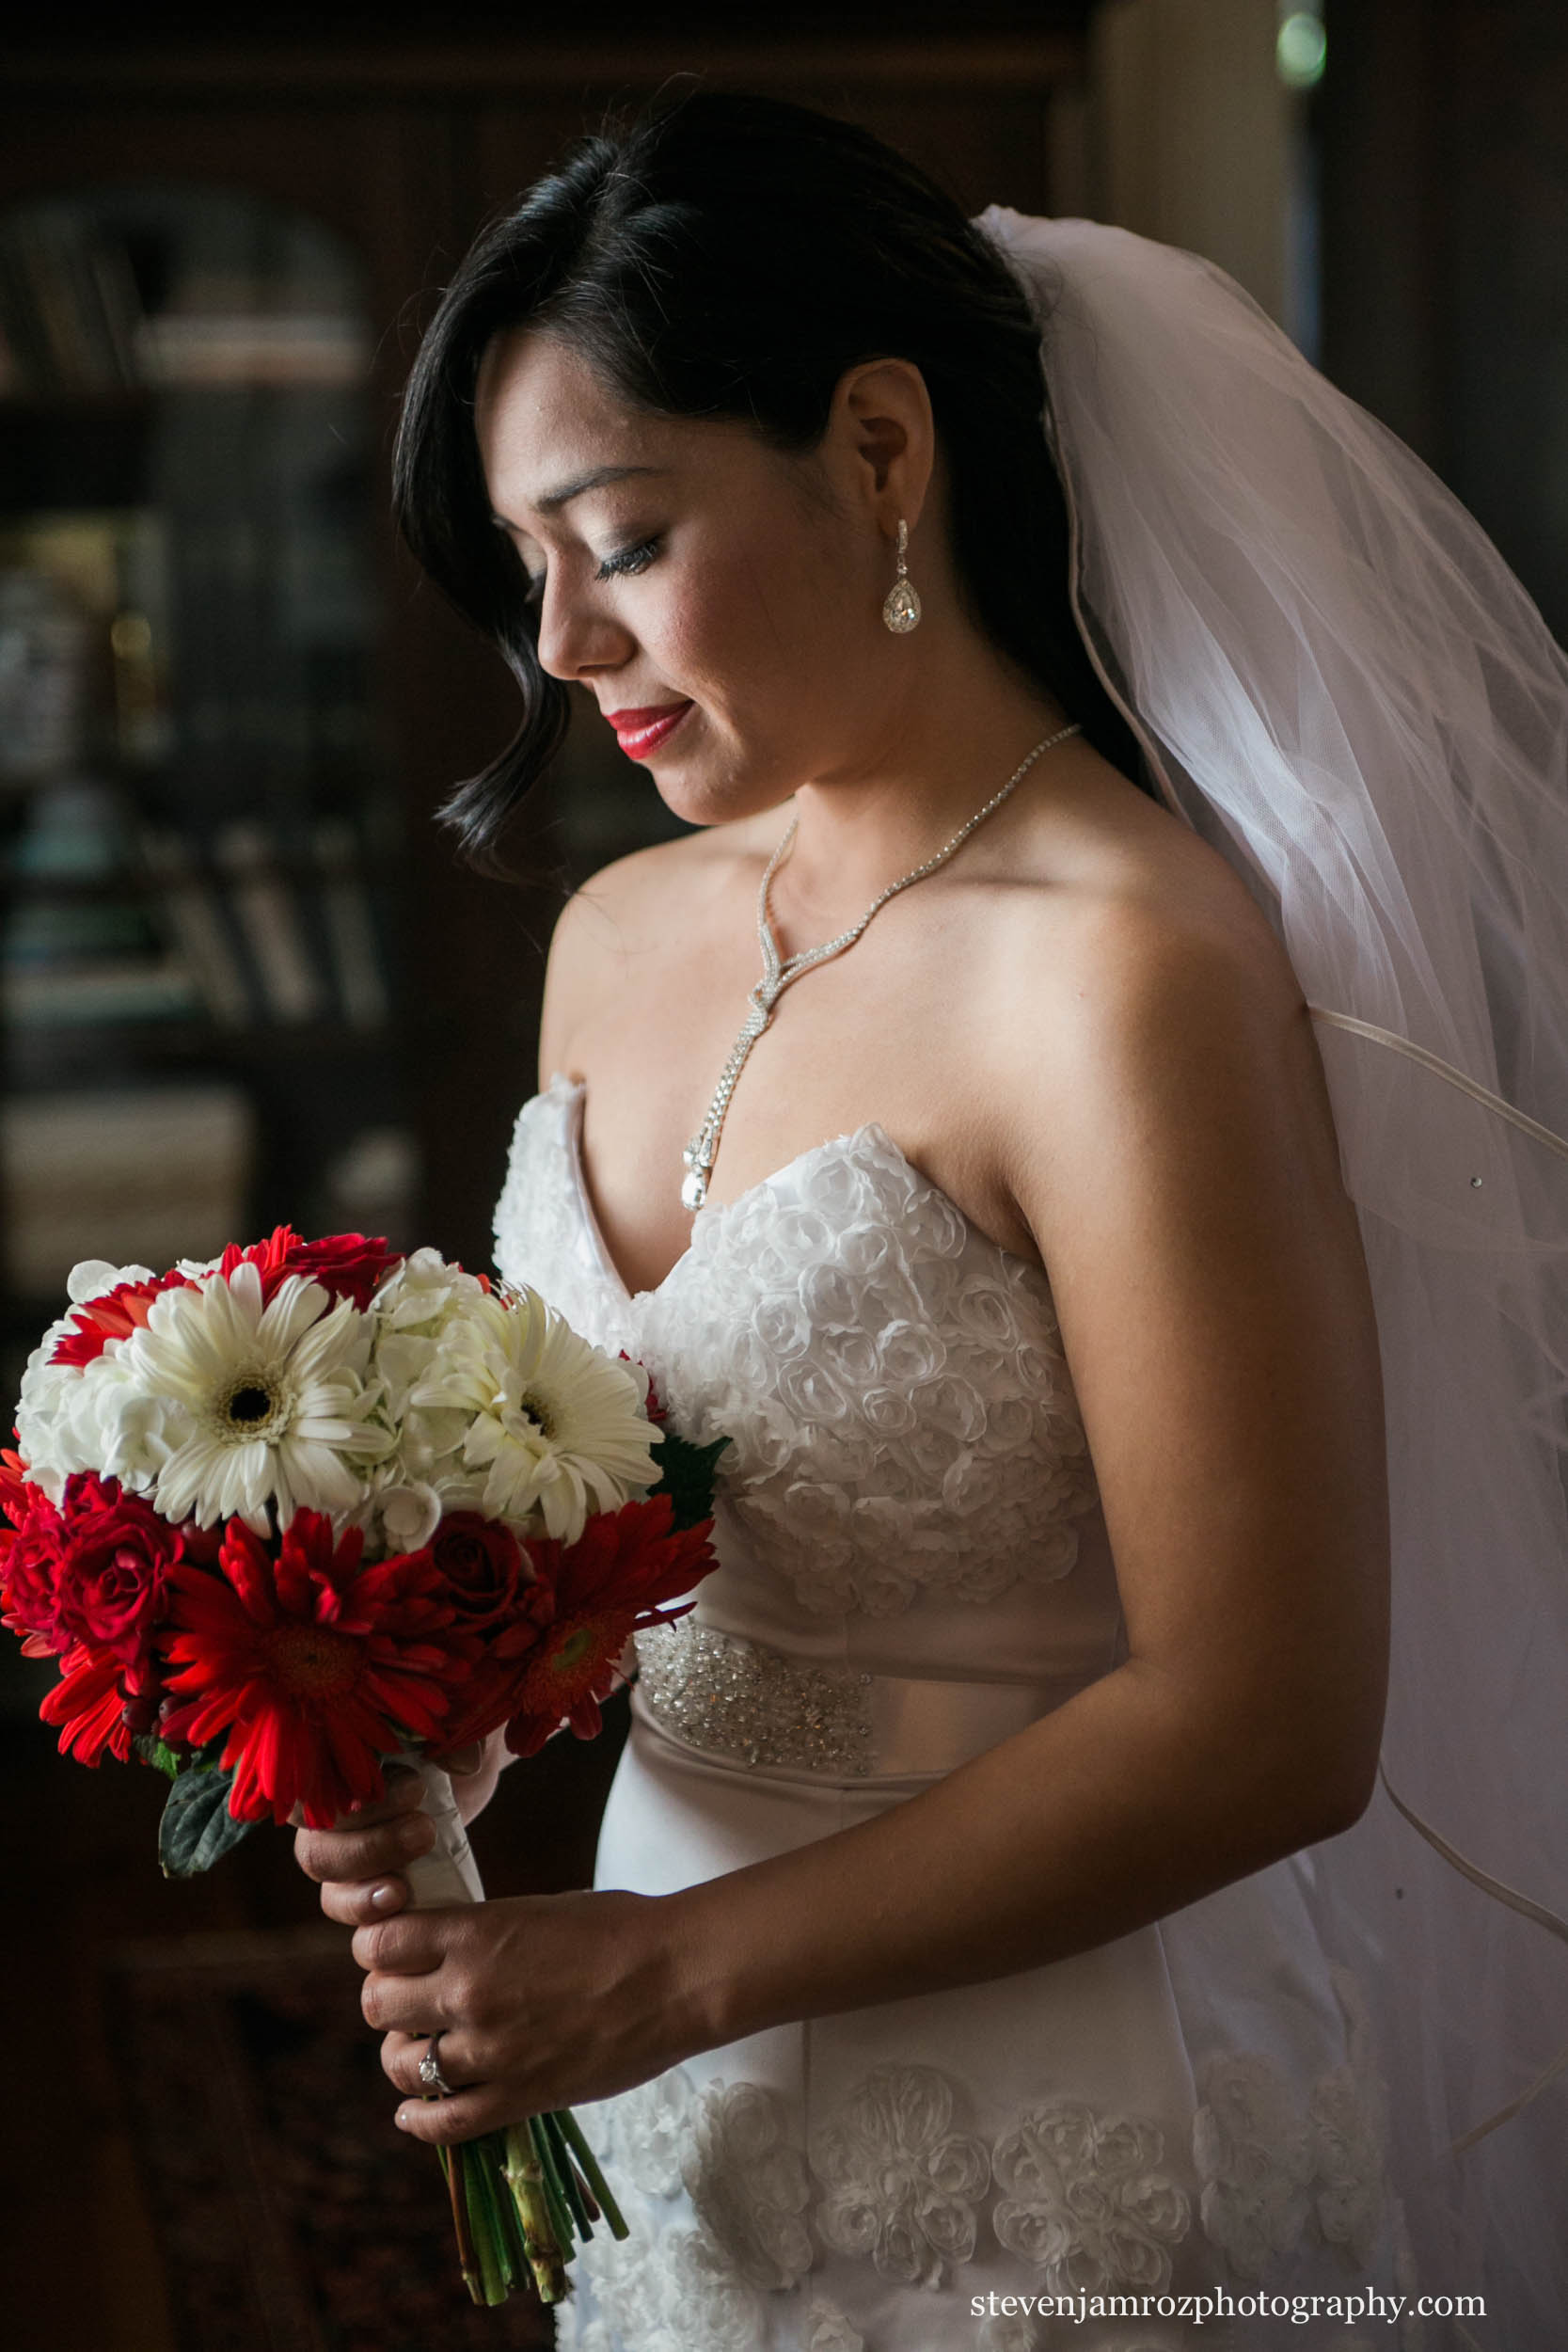 red-white-bouquet-bride-raleigh-photographer-0943.jpg